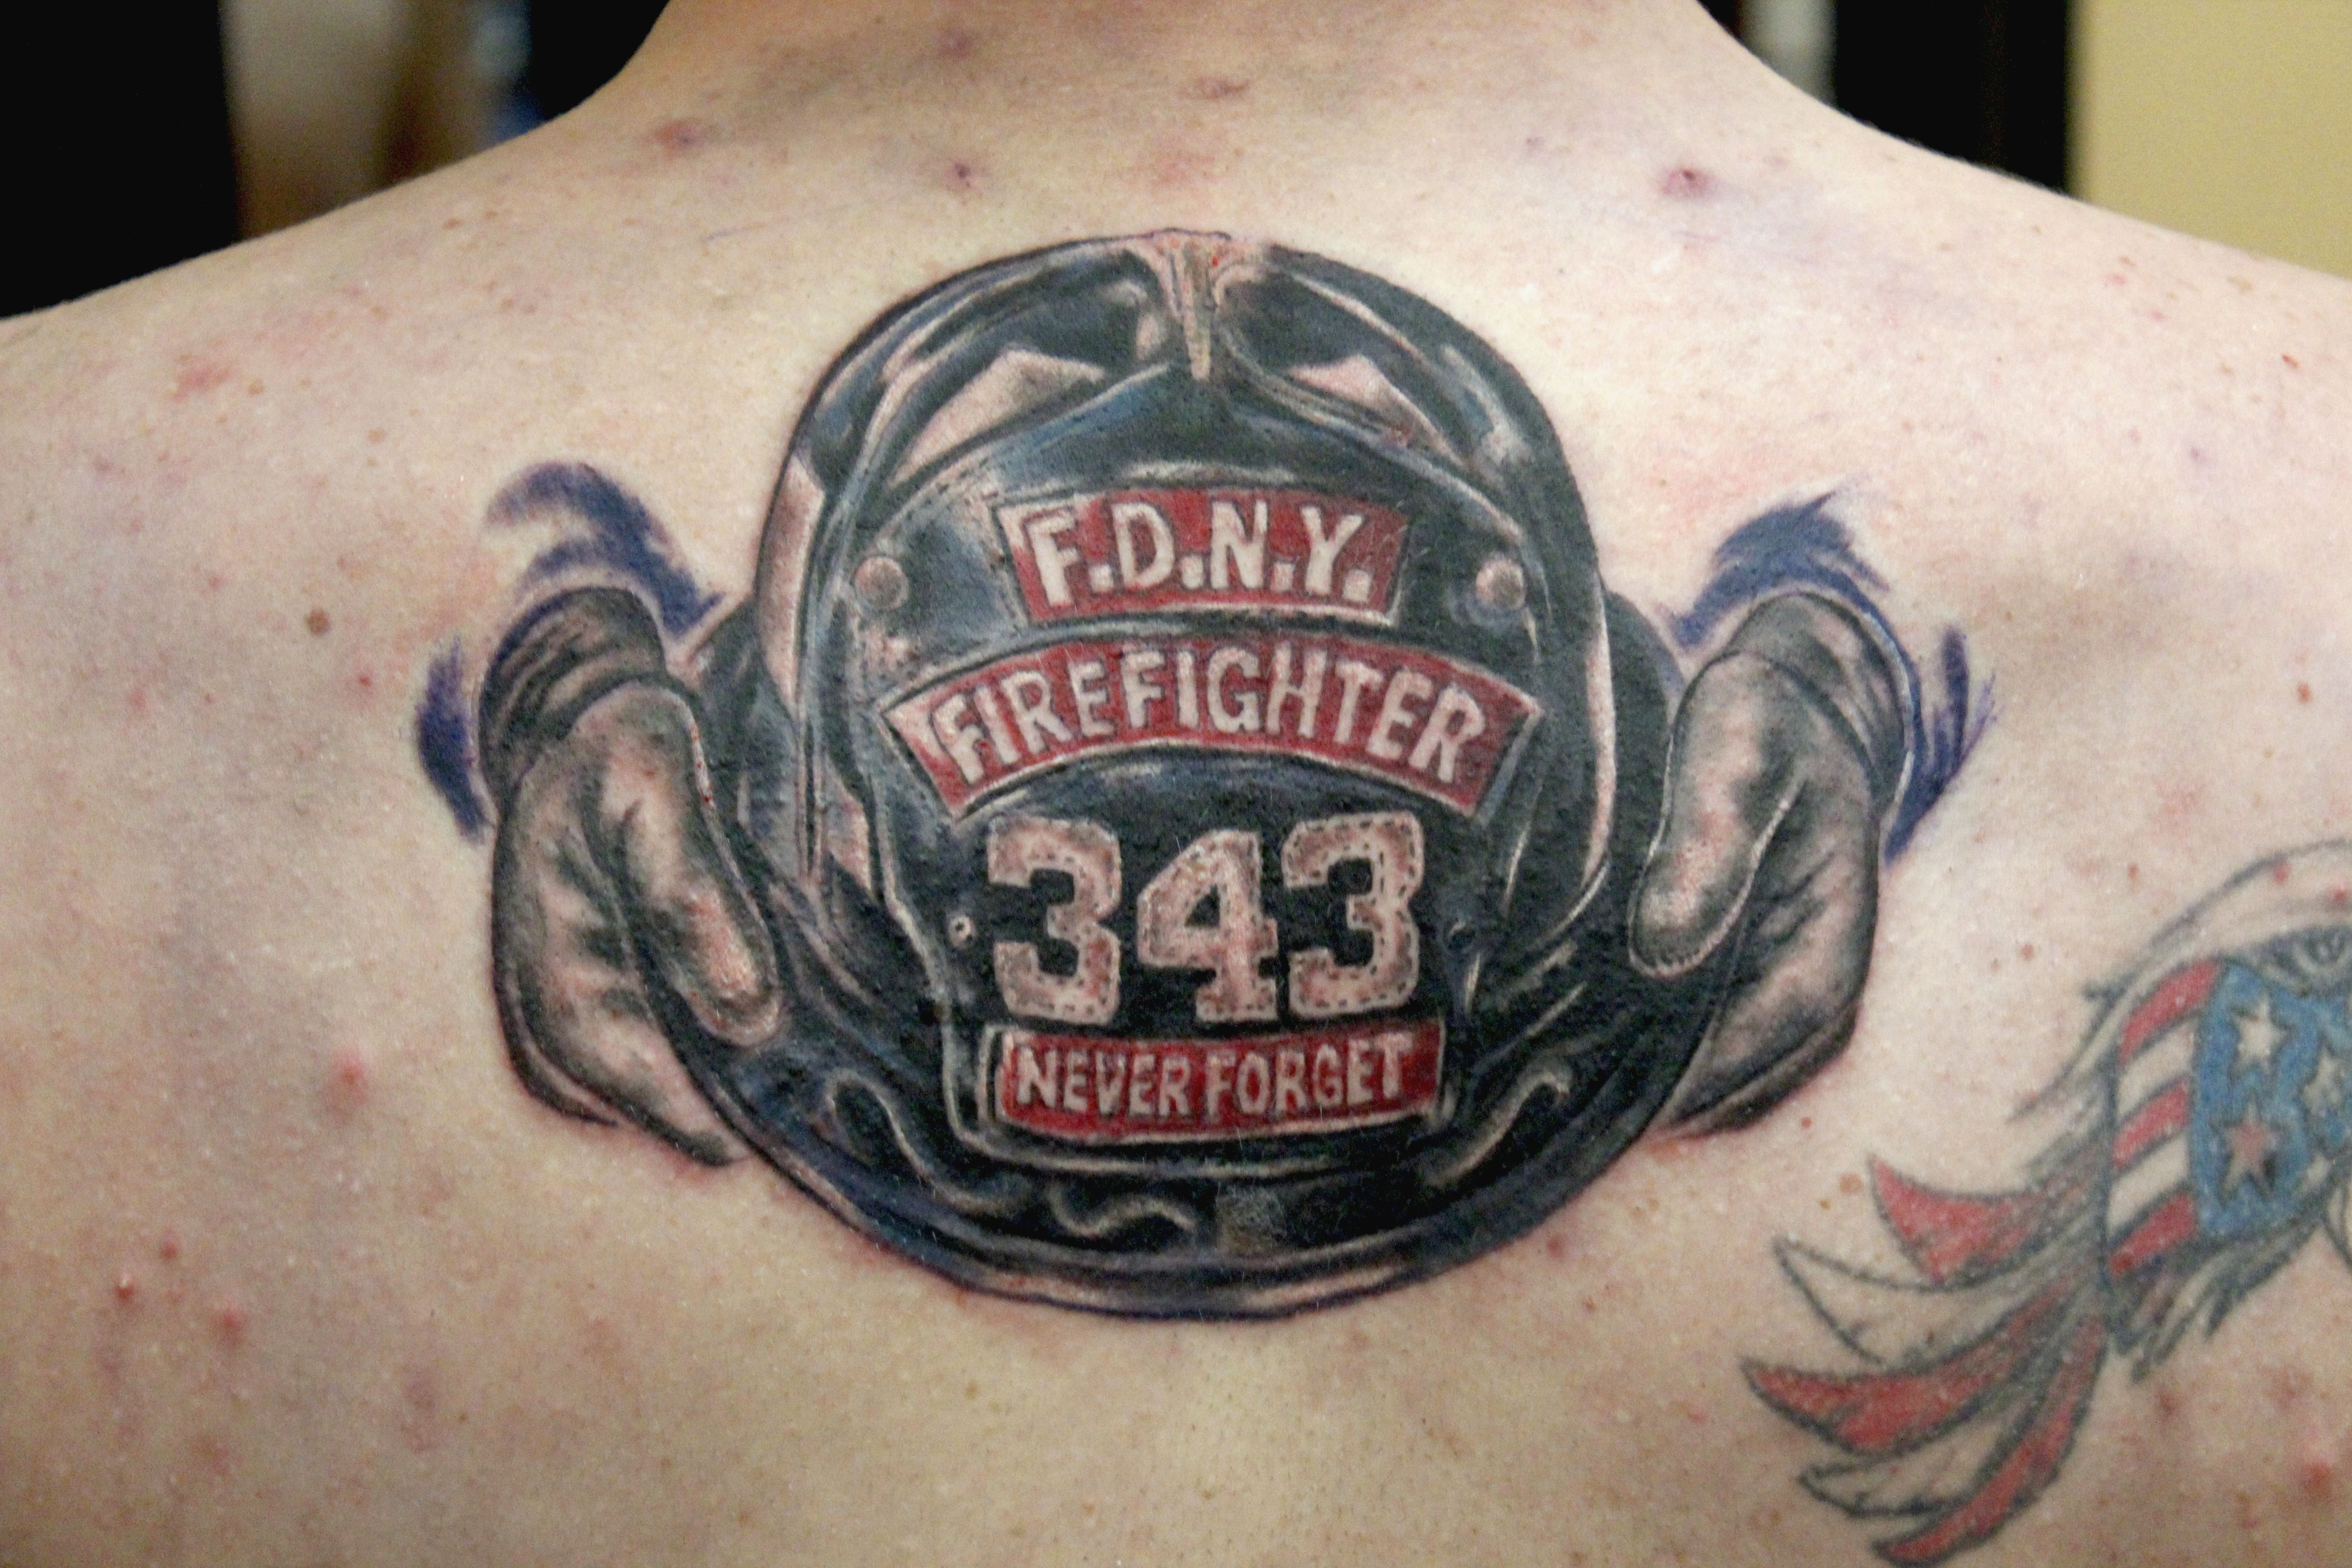 2c23ebaad F.D.N.Y. HELMET TRIBUTE TATTOO DONE BY SEAN AMBROSE AT ARROWS AND EMBERS  CUSTOM TATTOOING shared by NYC Firestore